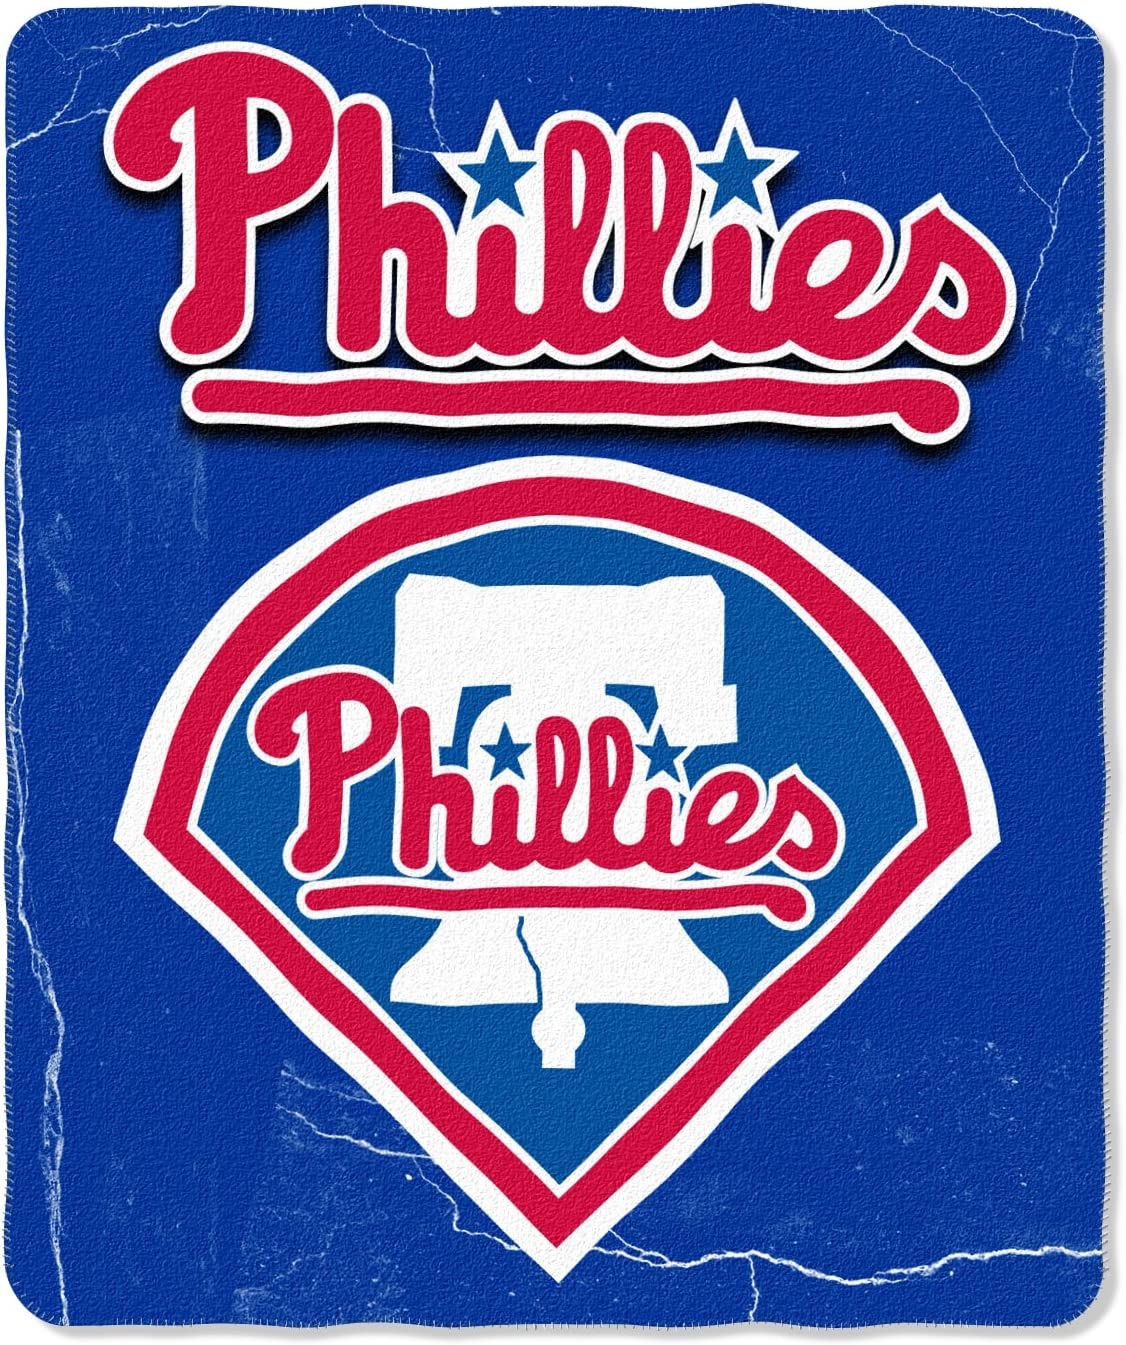 MLB Philadelphia Phillies Wicked Printed Fleece Throw, 50 x 60-inches